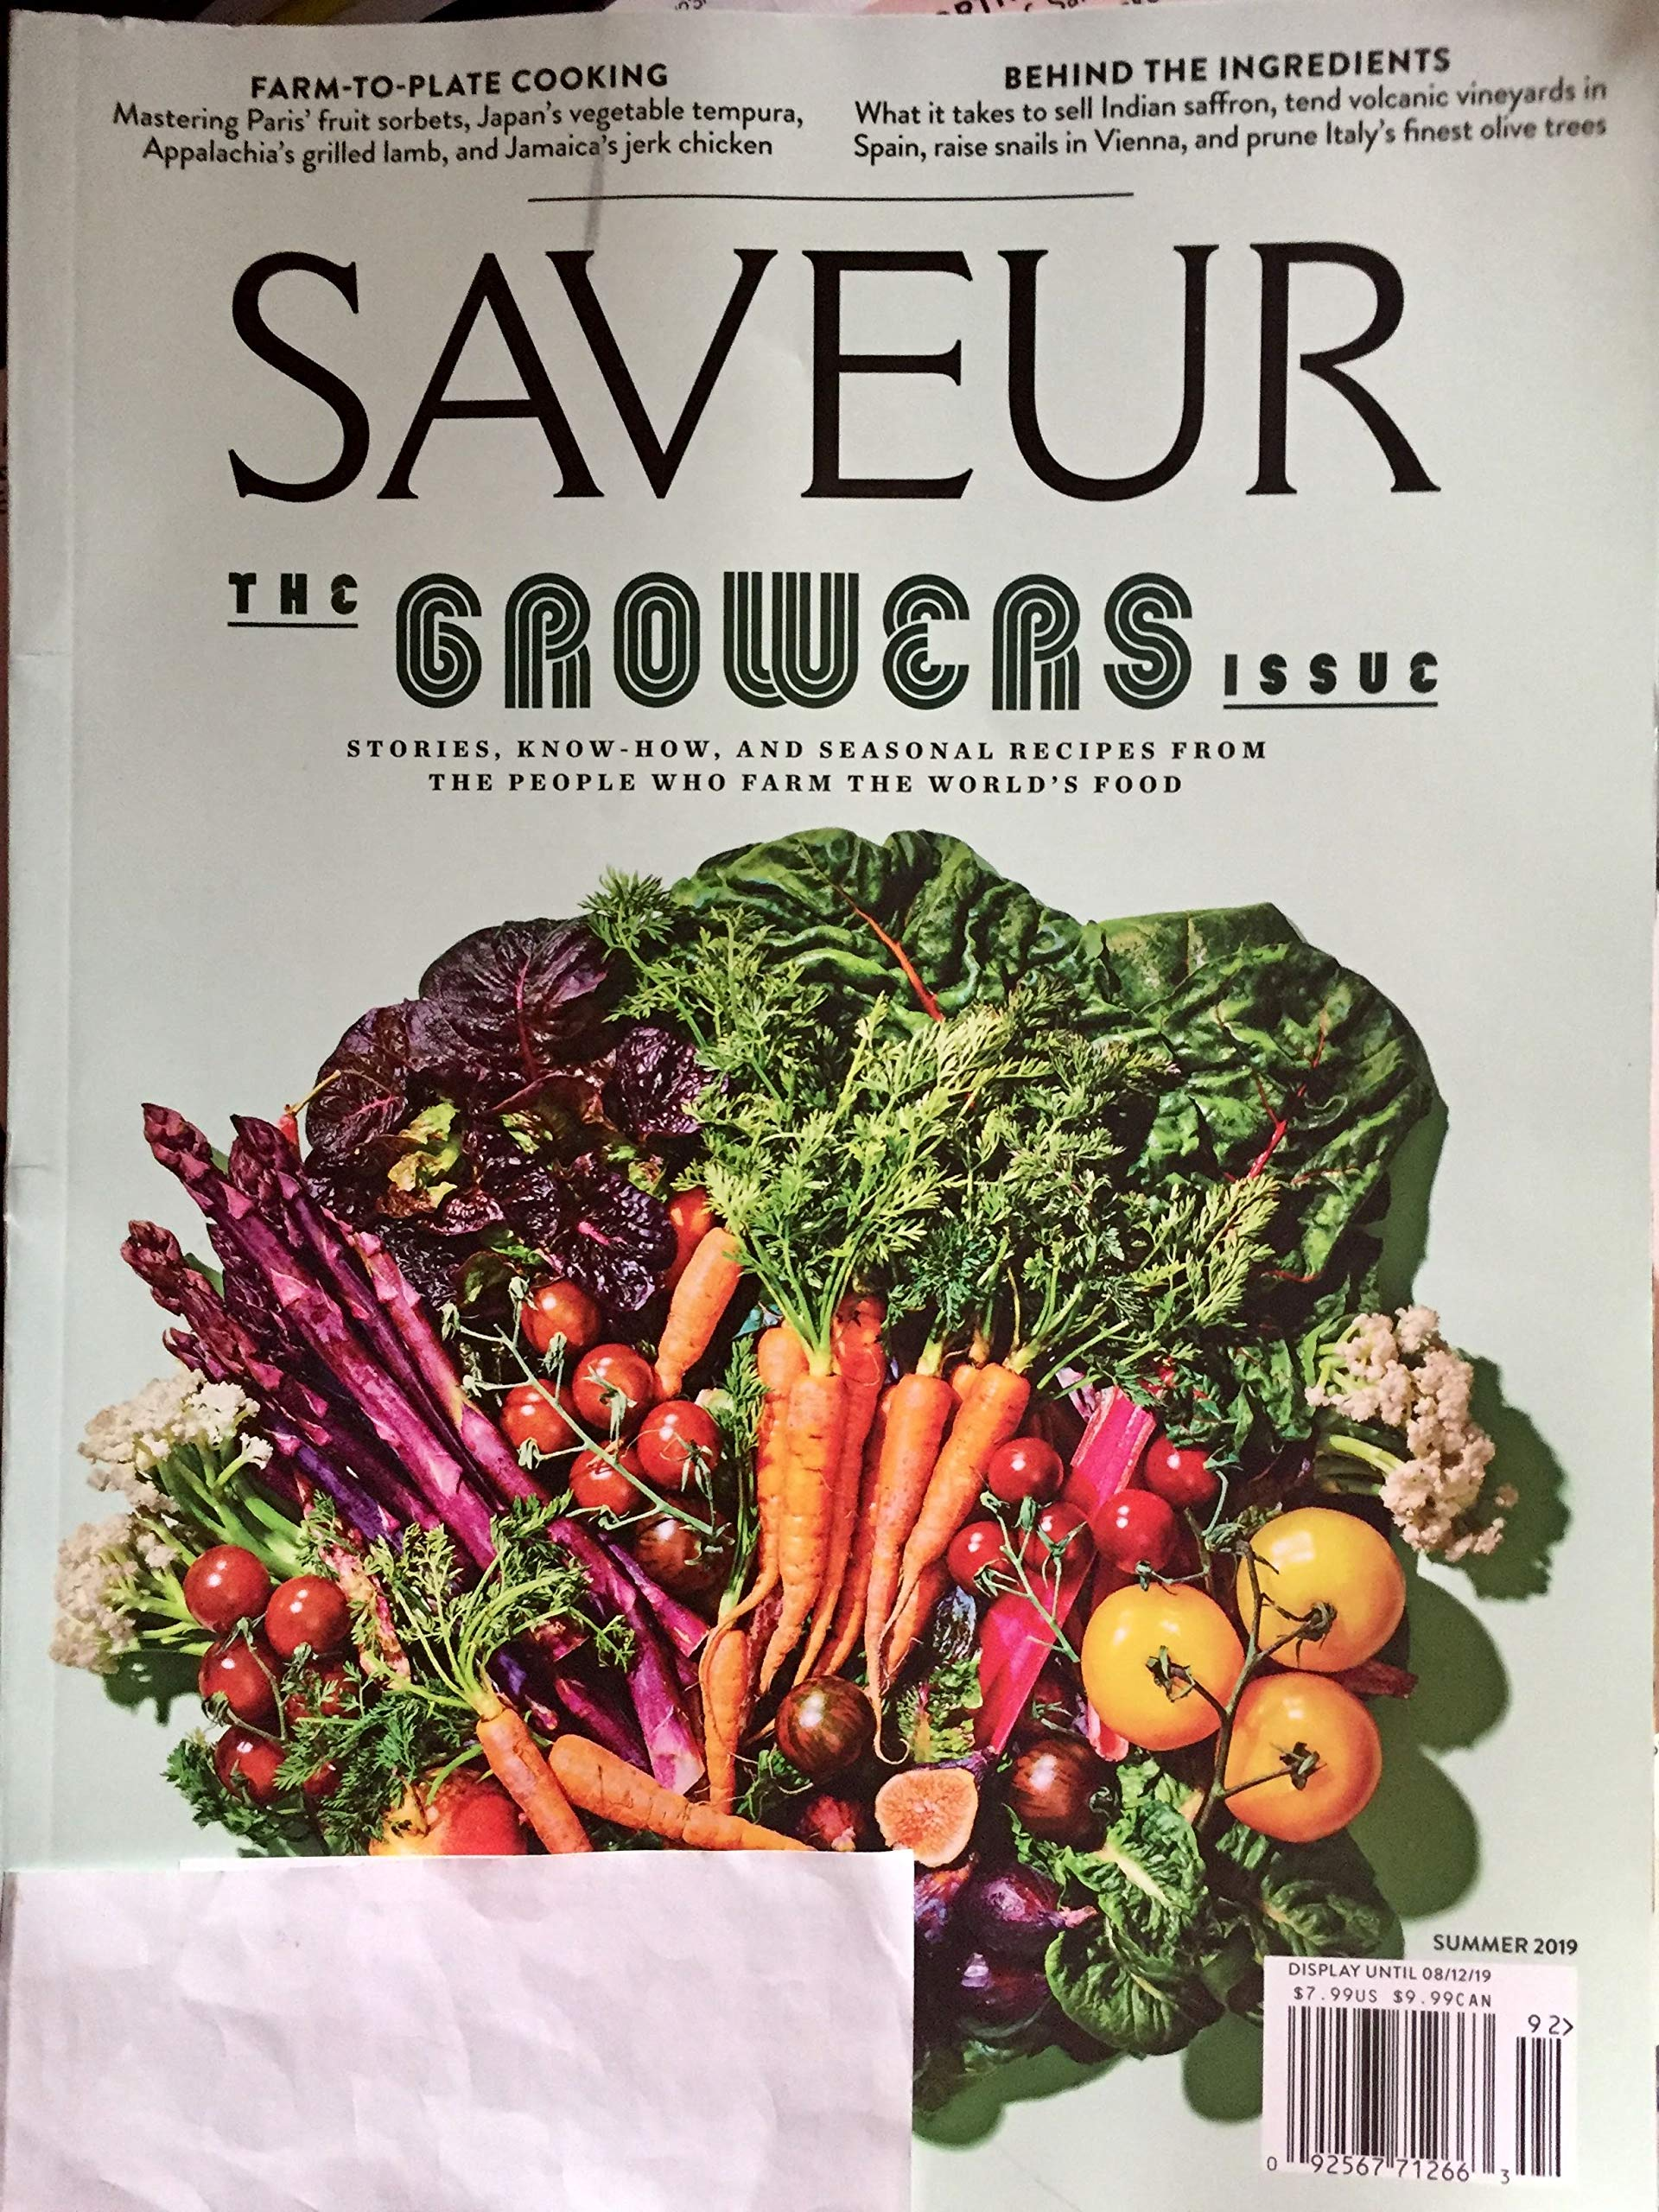 Saveur Magazine Summer 2019 The Growers Issue Stories Know How And Seasonal Recipes From The People Who Farm The World S Food Amazon Com Books